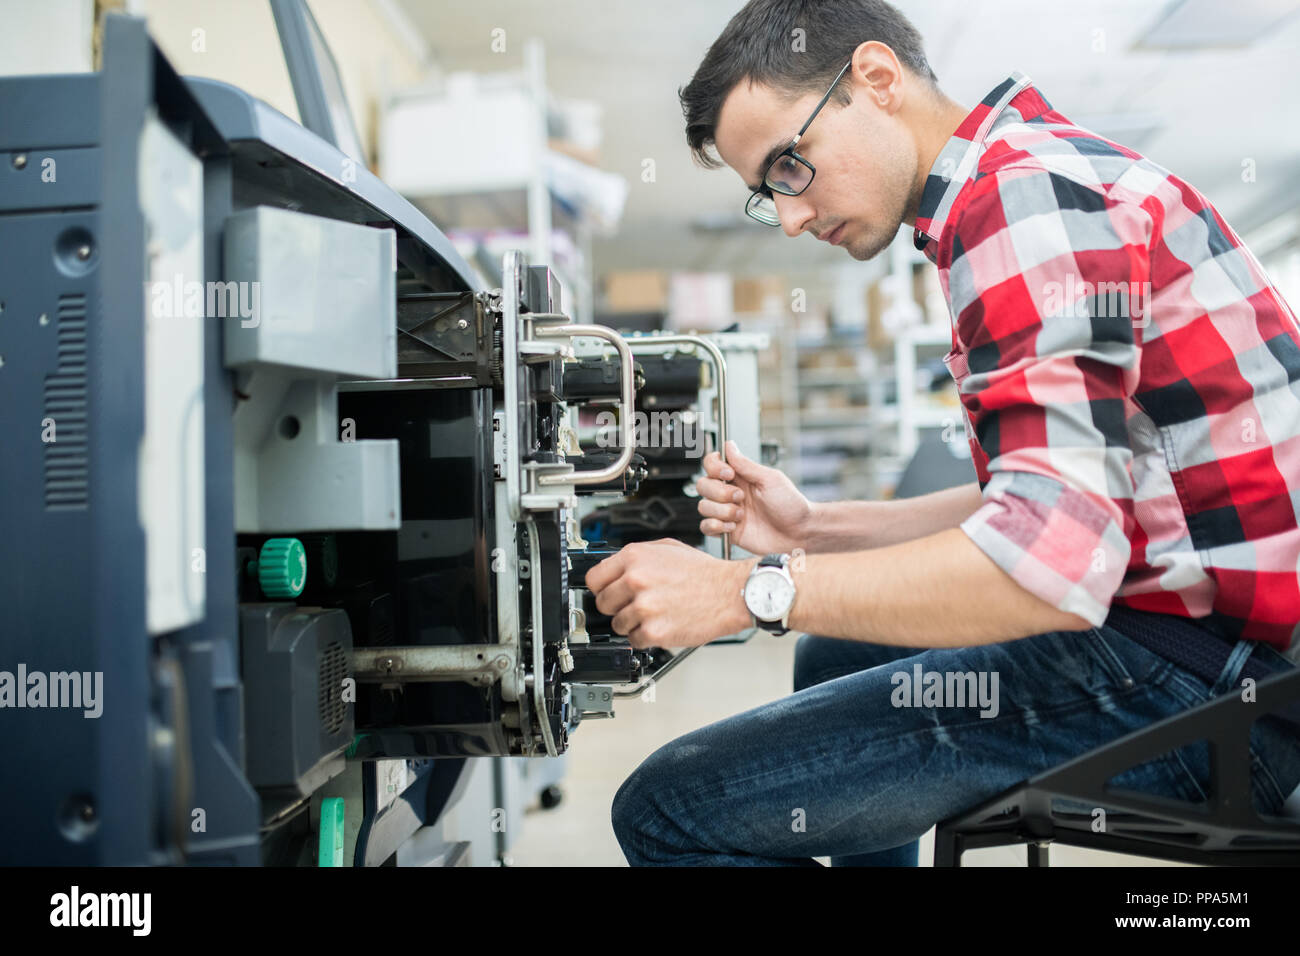 Casual man working with printing machine - Stock Image